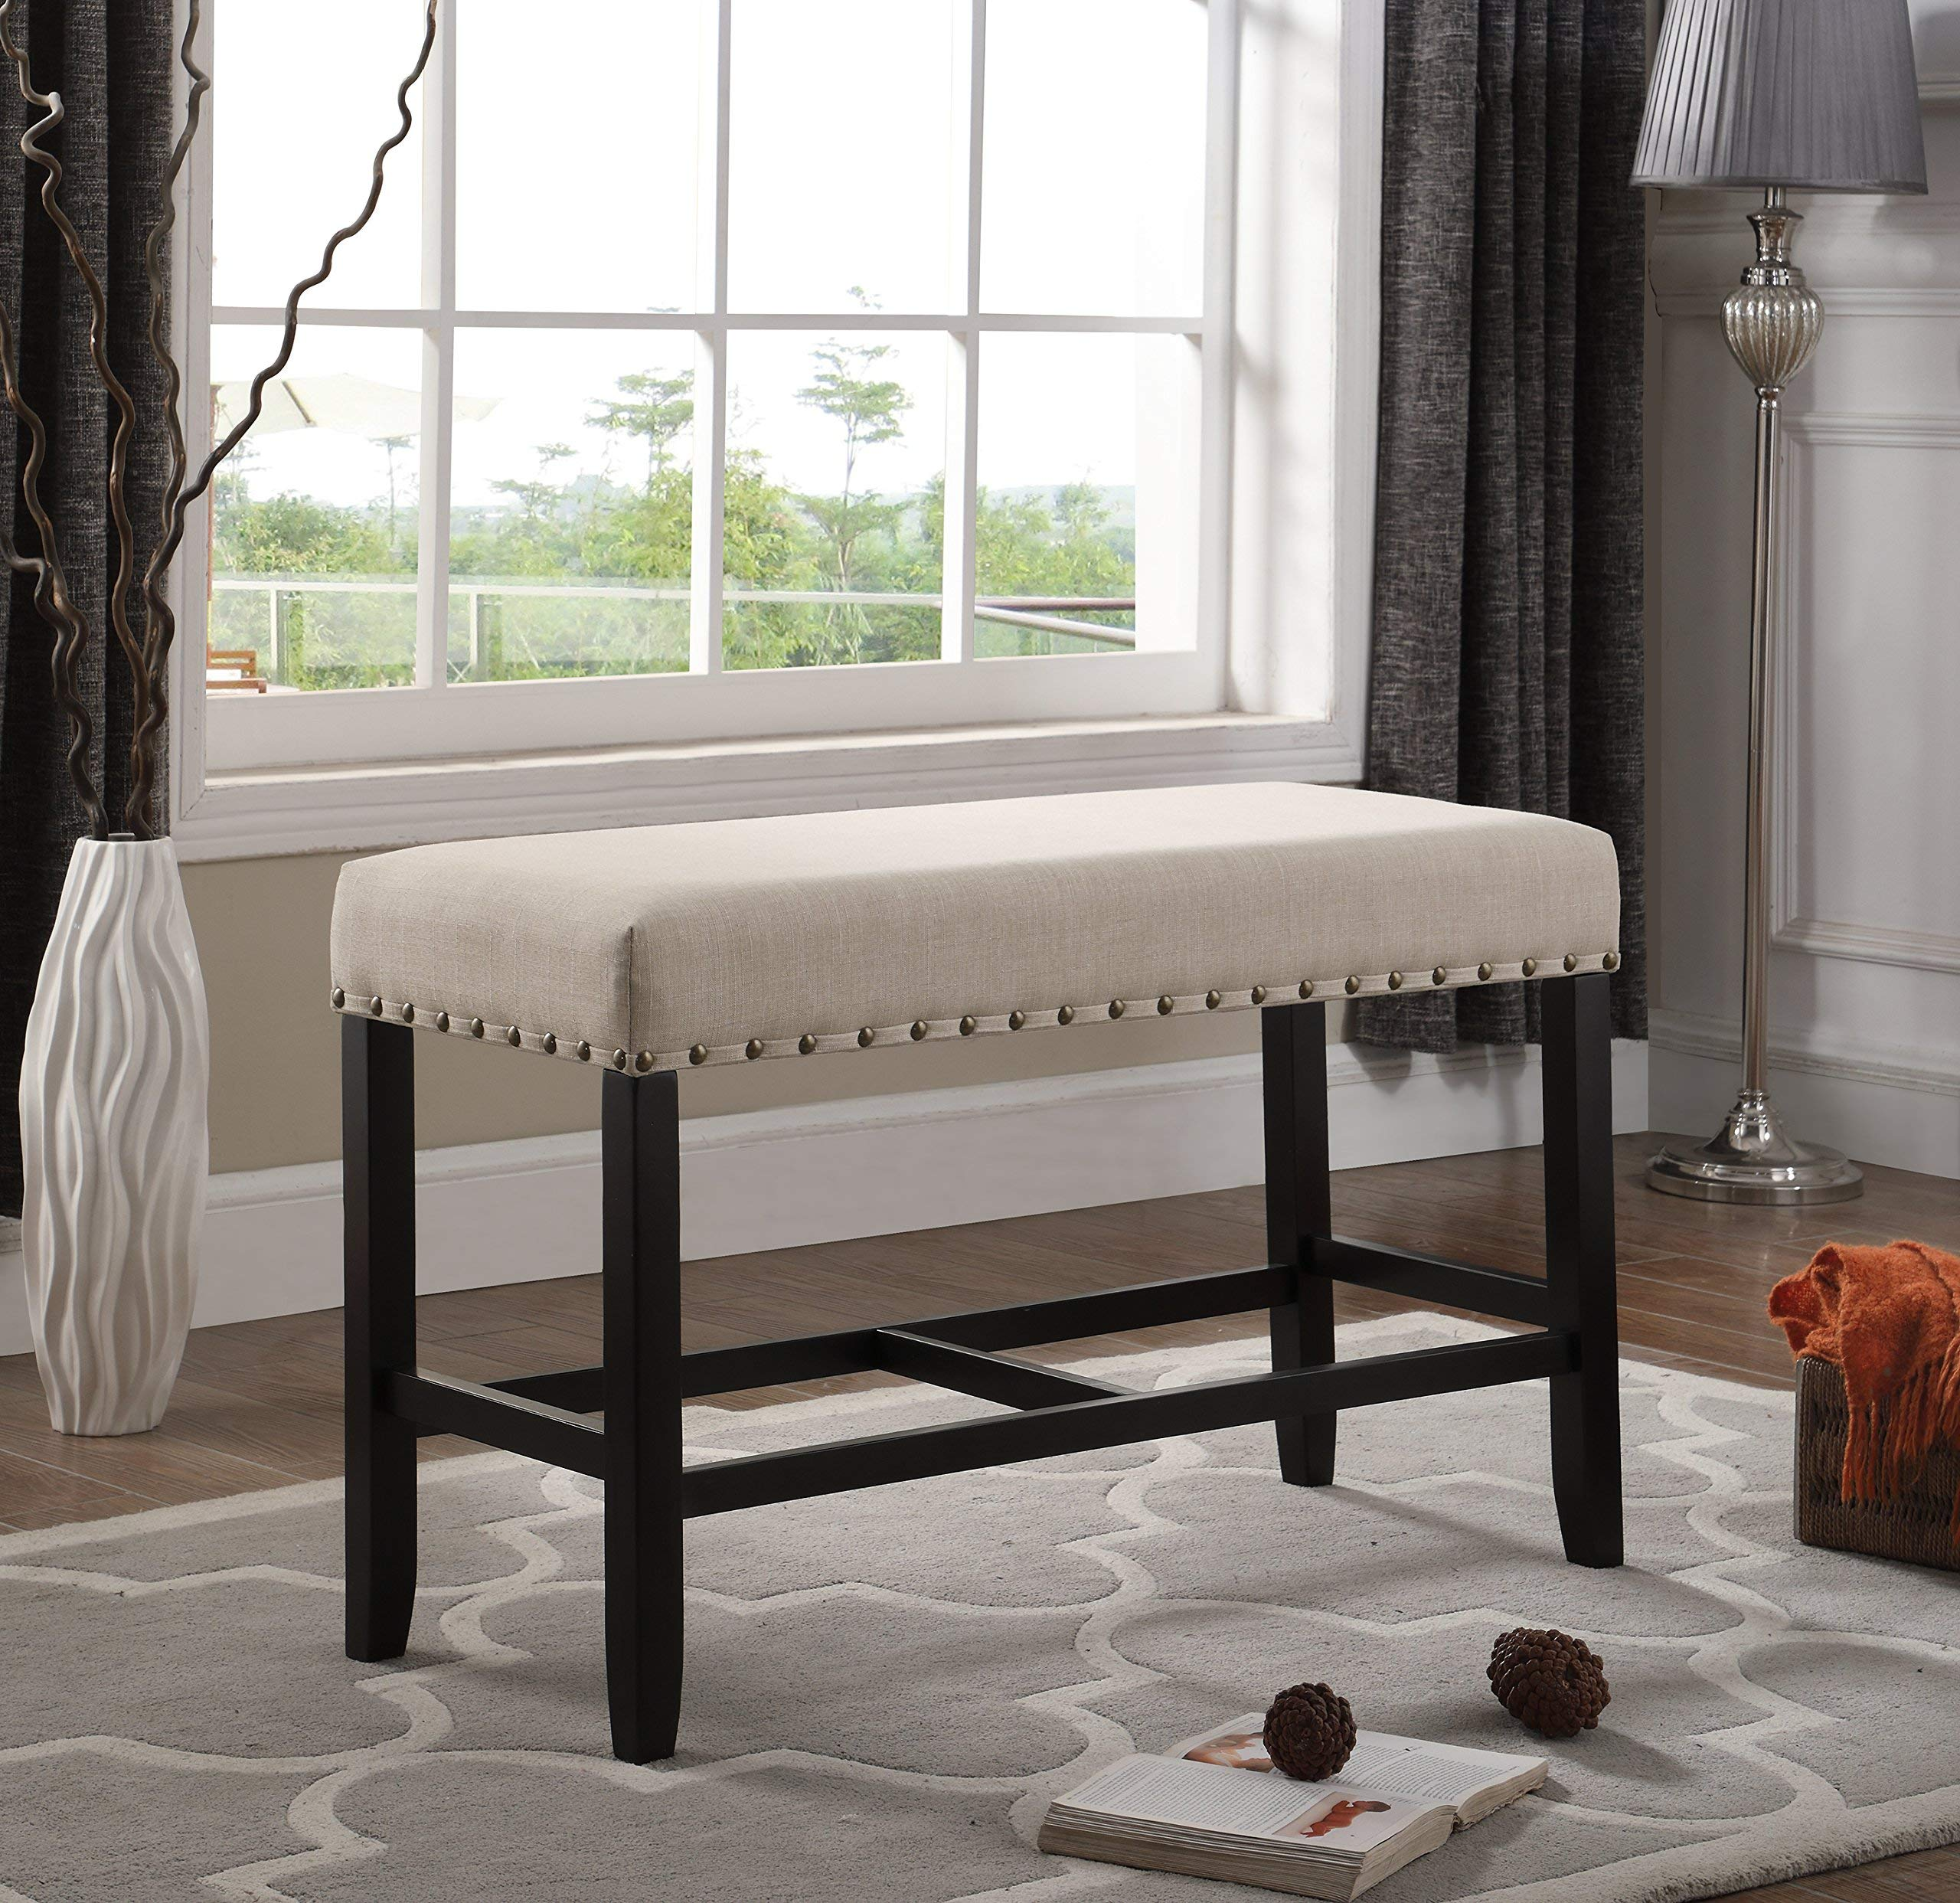 Roundhill Furniture PB162TA Biony Fabric Counter Height Dining Bench with Nailhead Trim, Tan by Roundhill Furniture